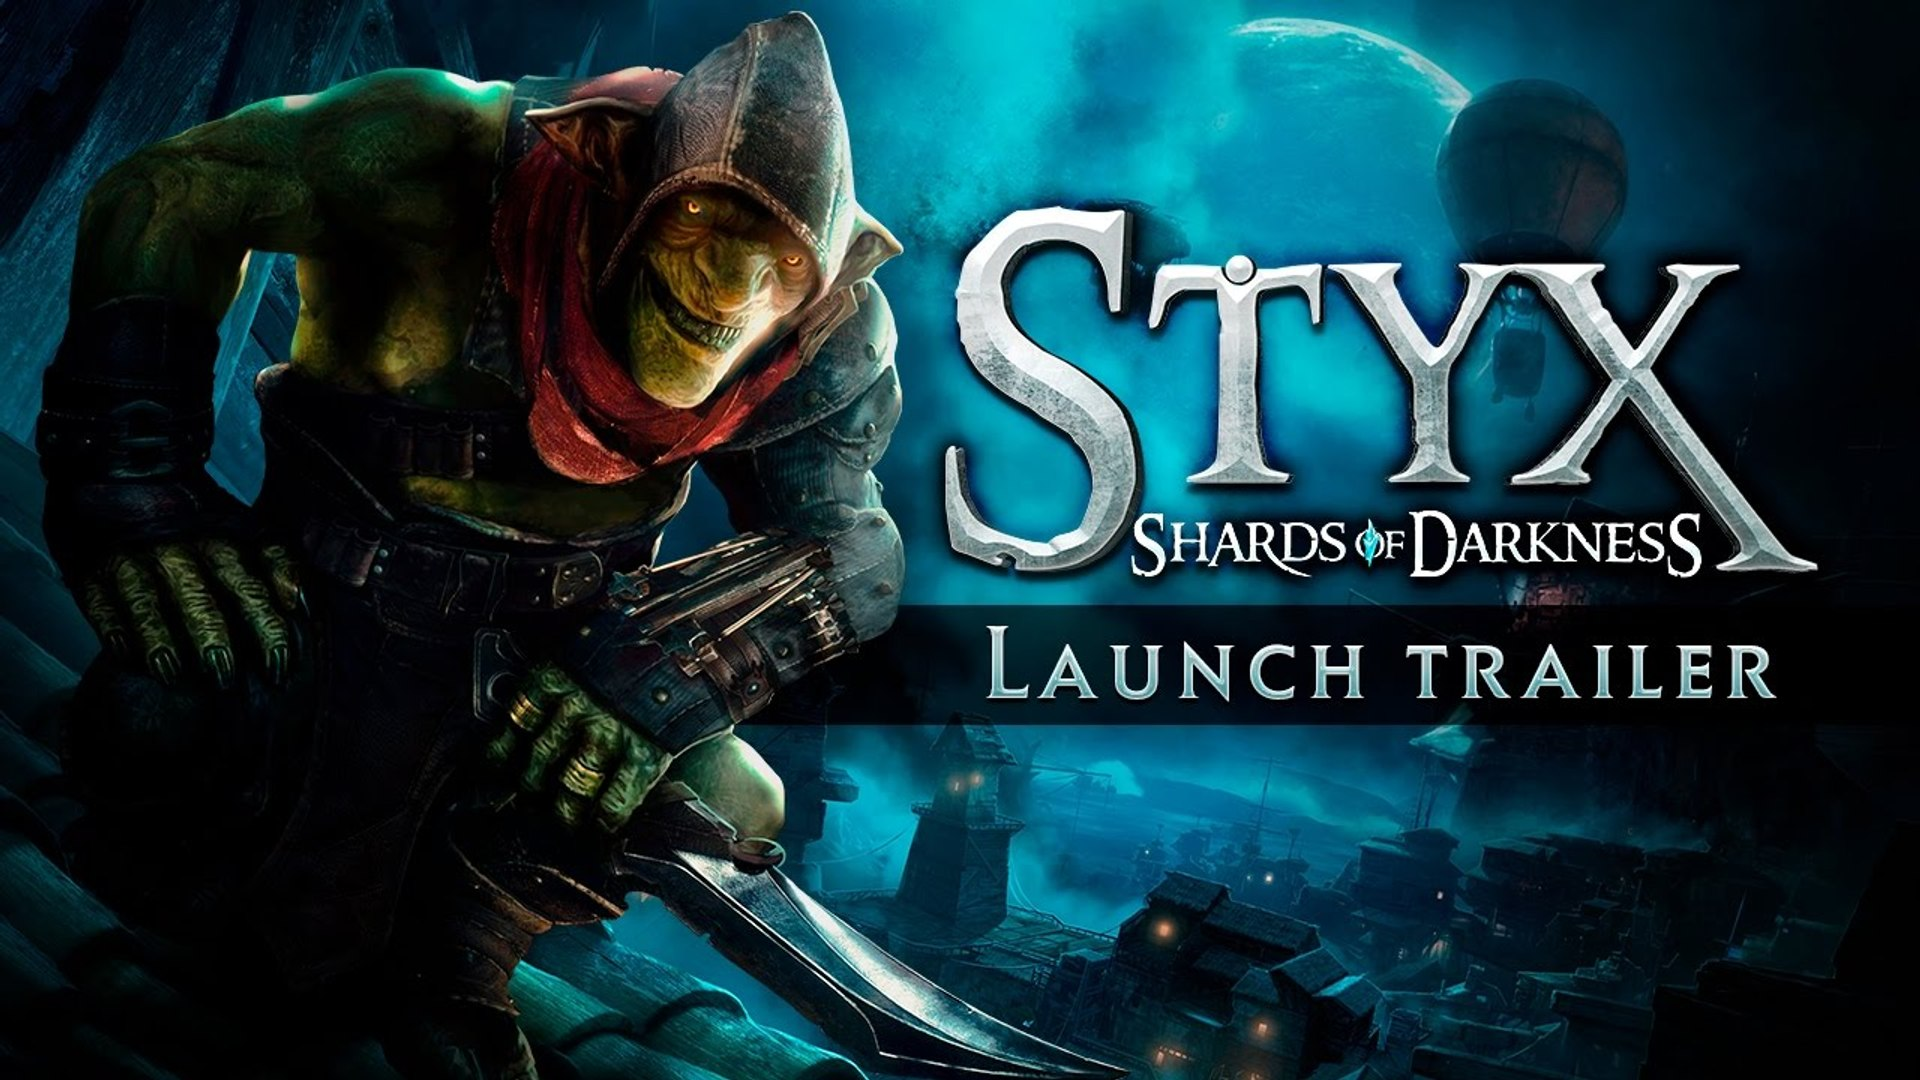 Styx Shards Of Darkness Launch Trailer 2017 Video Dailymotion